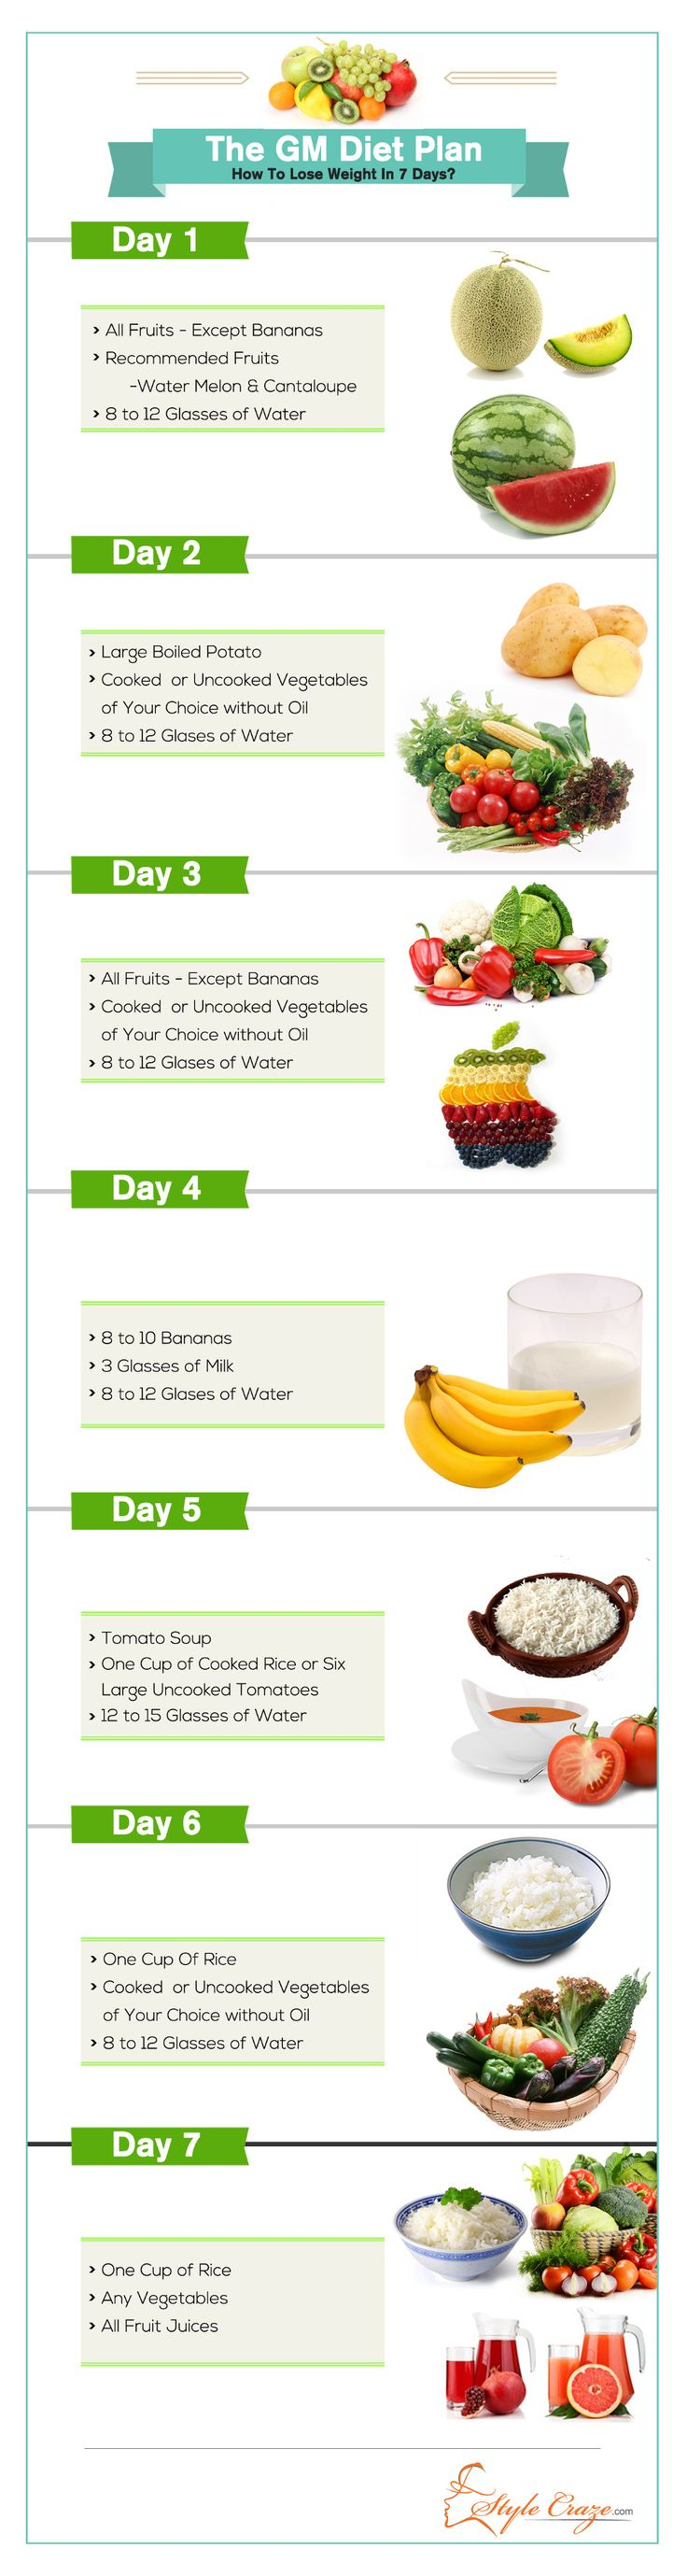 Have you heard of the GM diet (General Motors diet)? Over 7 days, you could lose 10-17 lbs. on this diet/cleanse. Does it work? One blogger shares results.